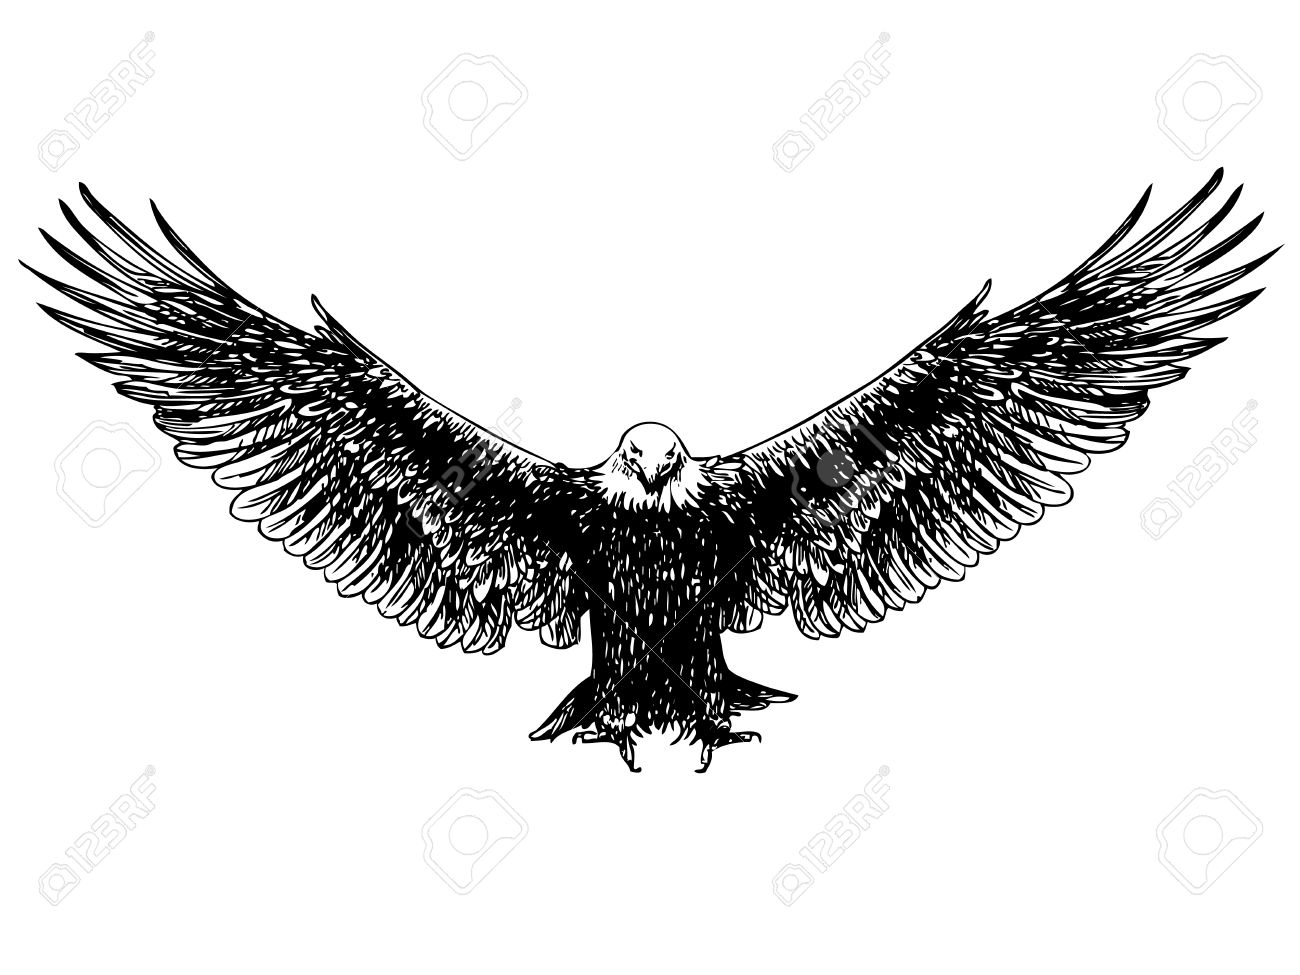 Freehand sketch of flying eagle hand drawn on white background stock vector 46096843